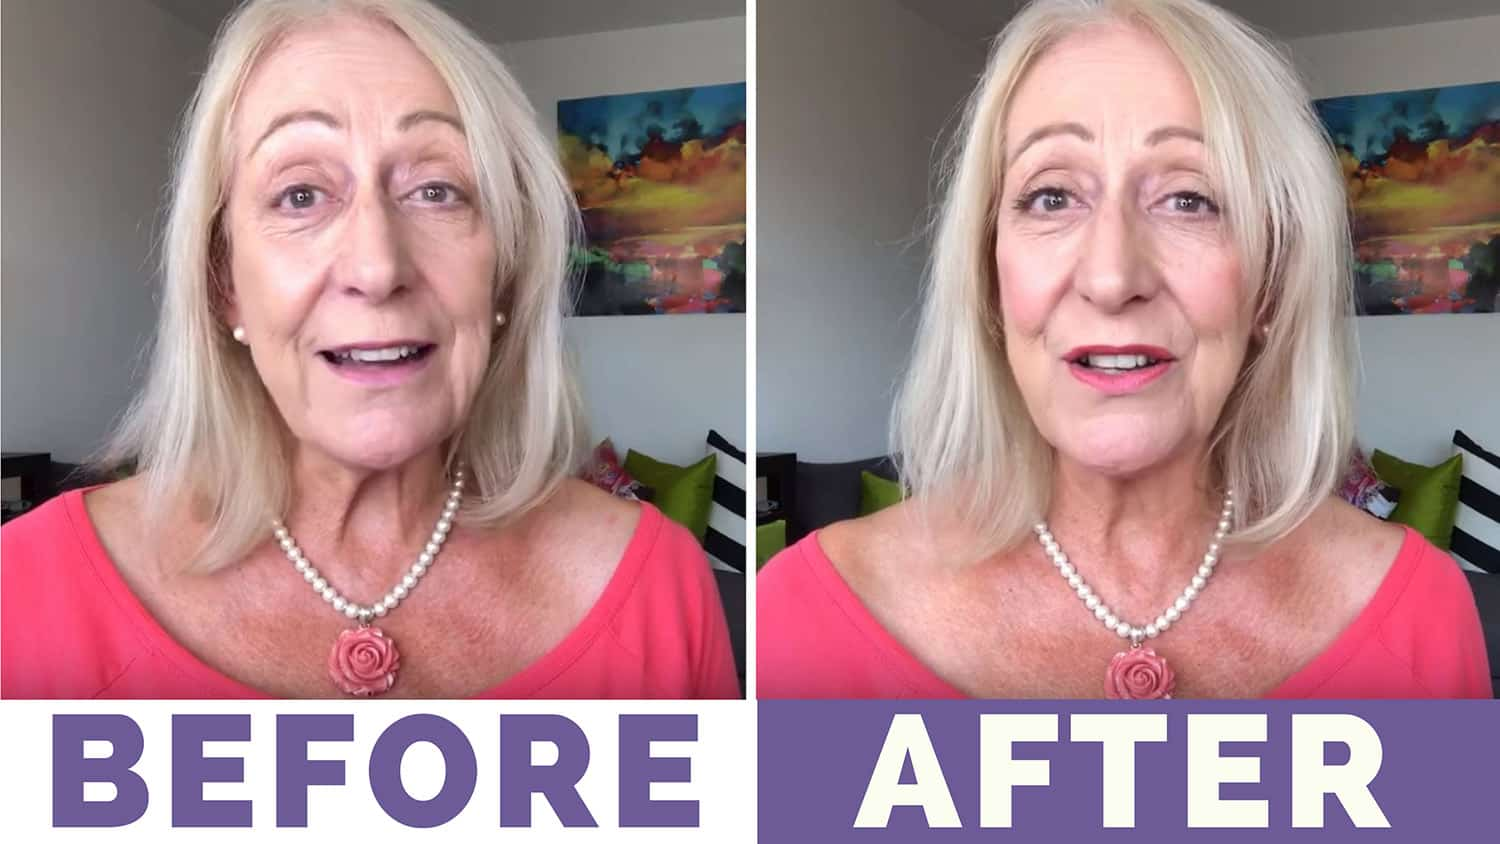 Look Spectacular in Just 15 Minutes With Affordable E.L.F. Cosmetics